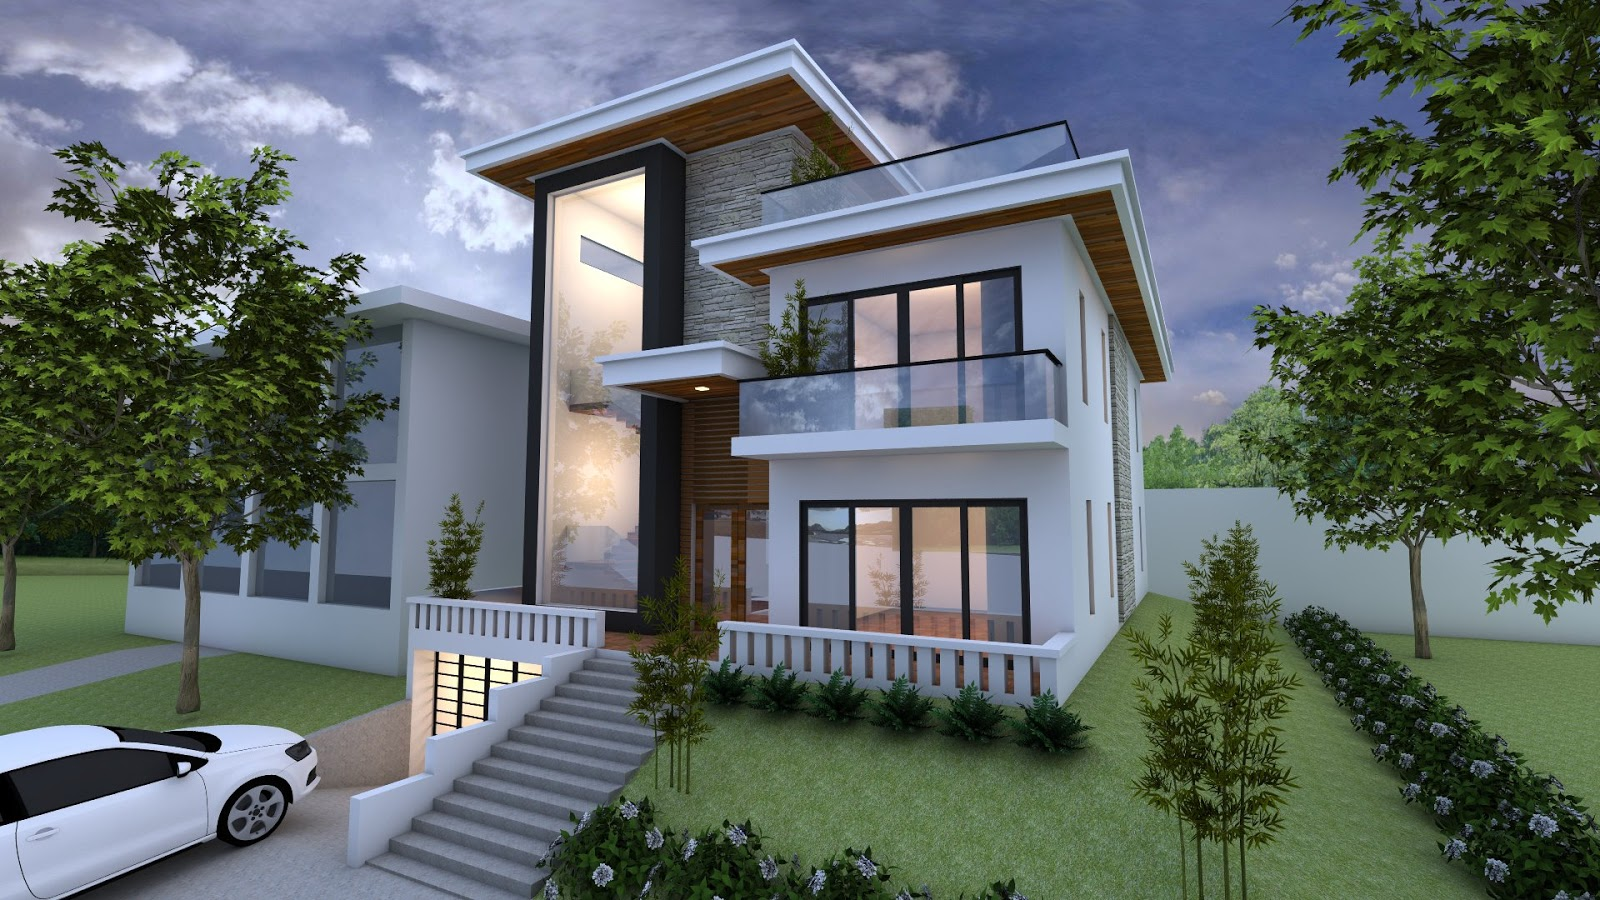 Sketchup exterior villa design drawing from elevation 3 for Exterieur villa design